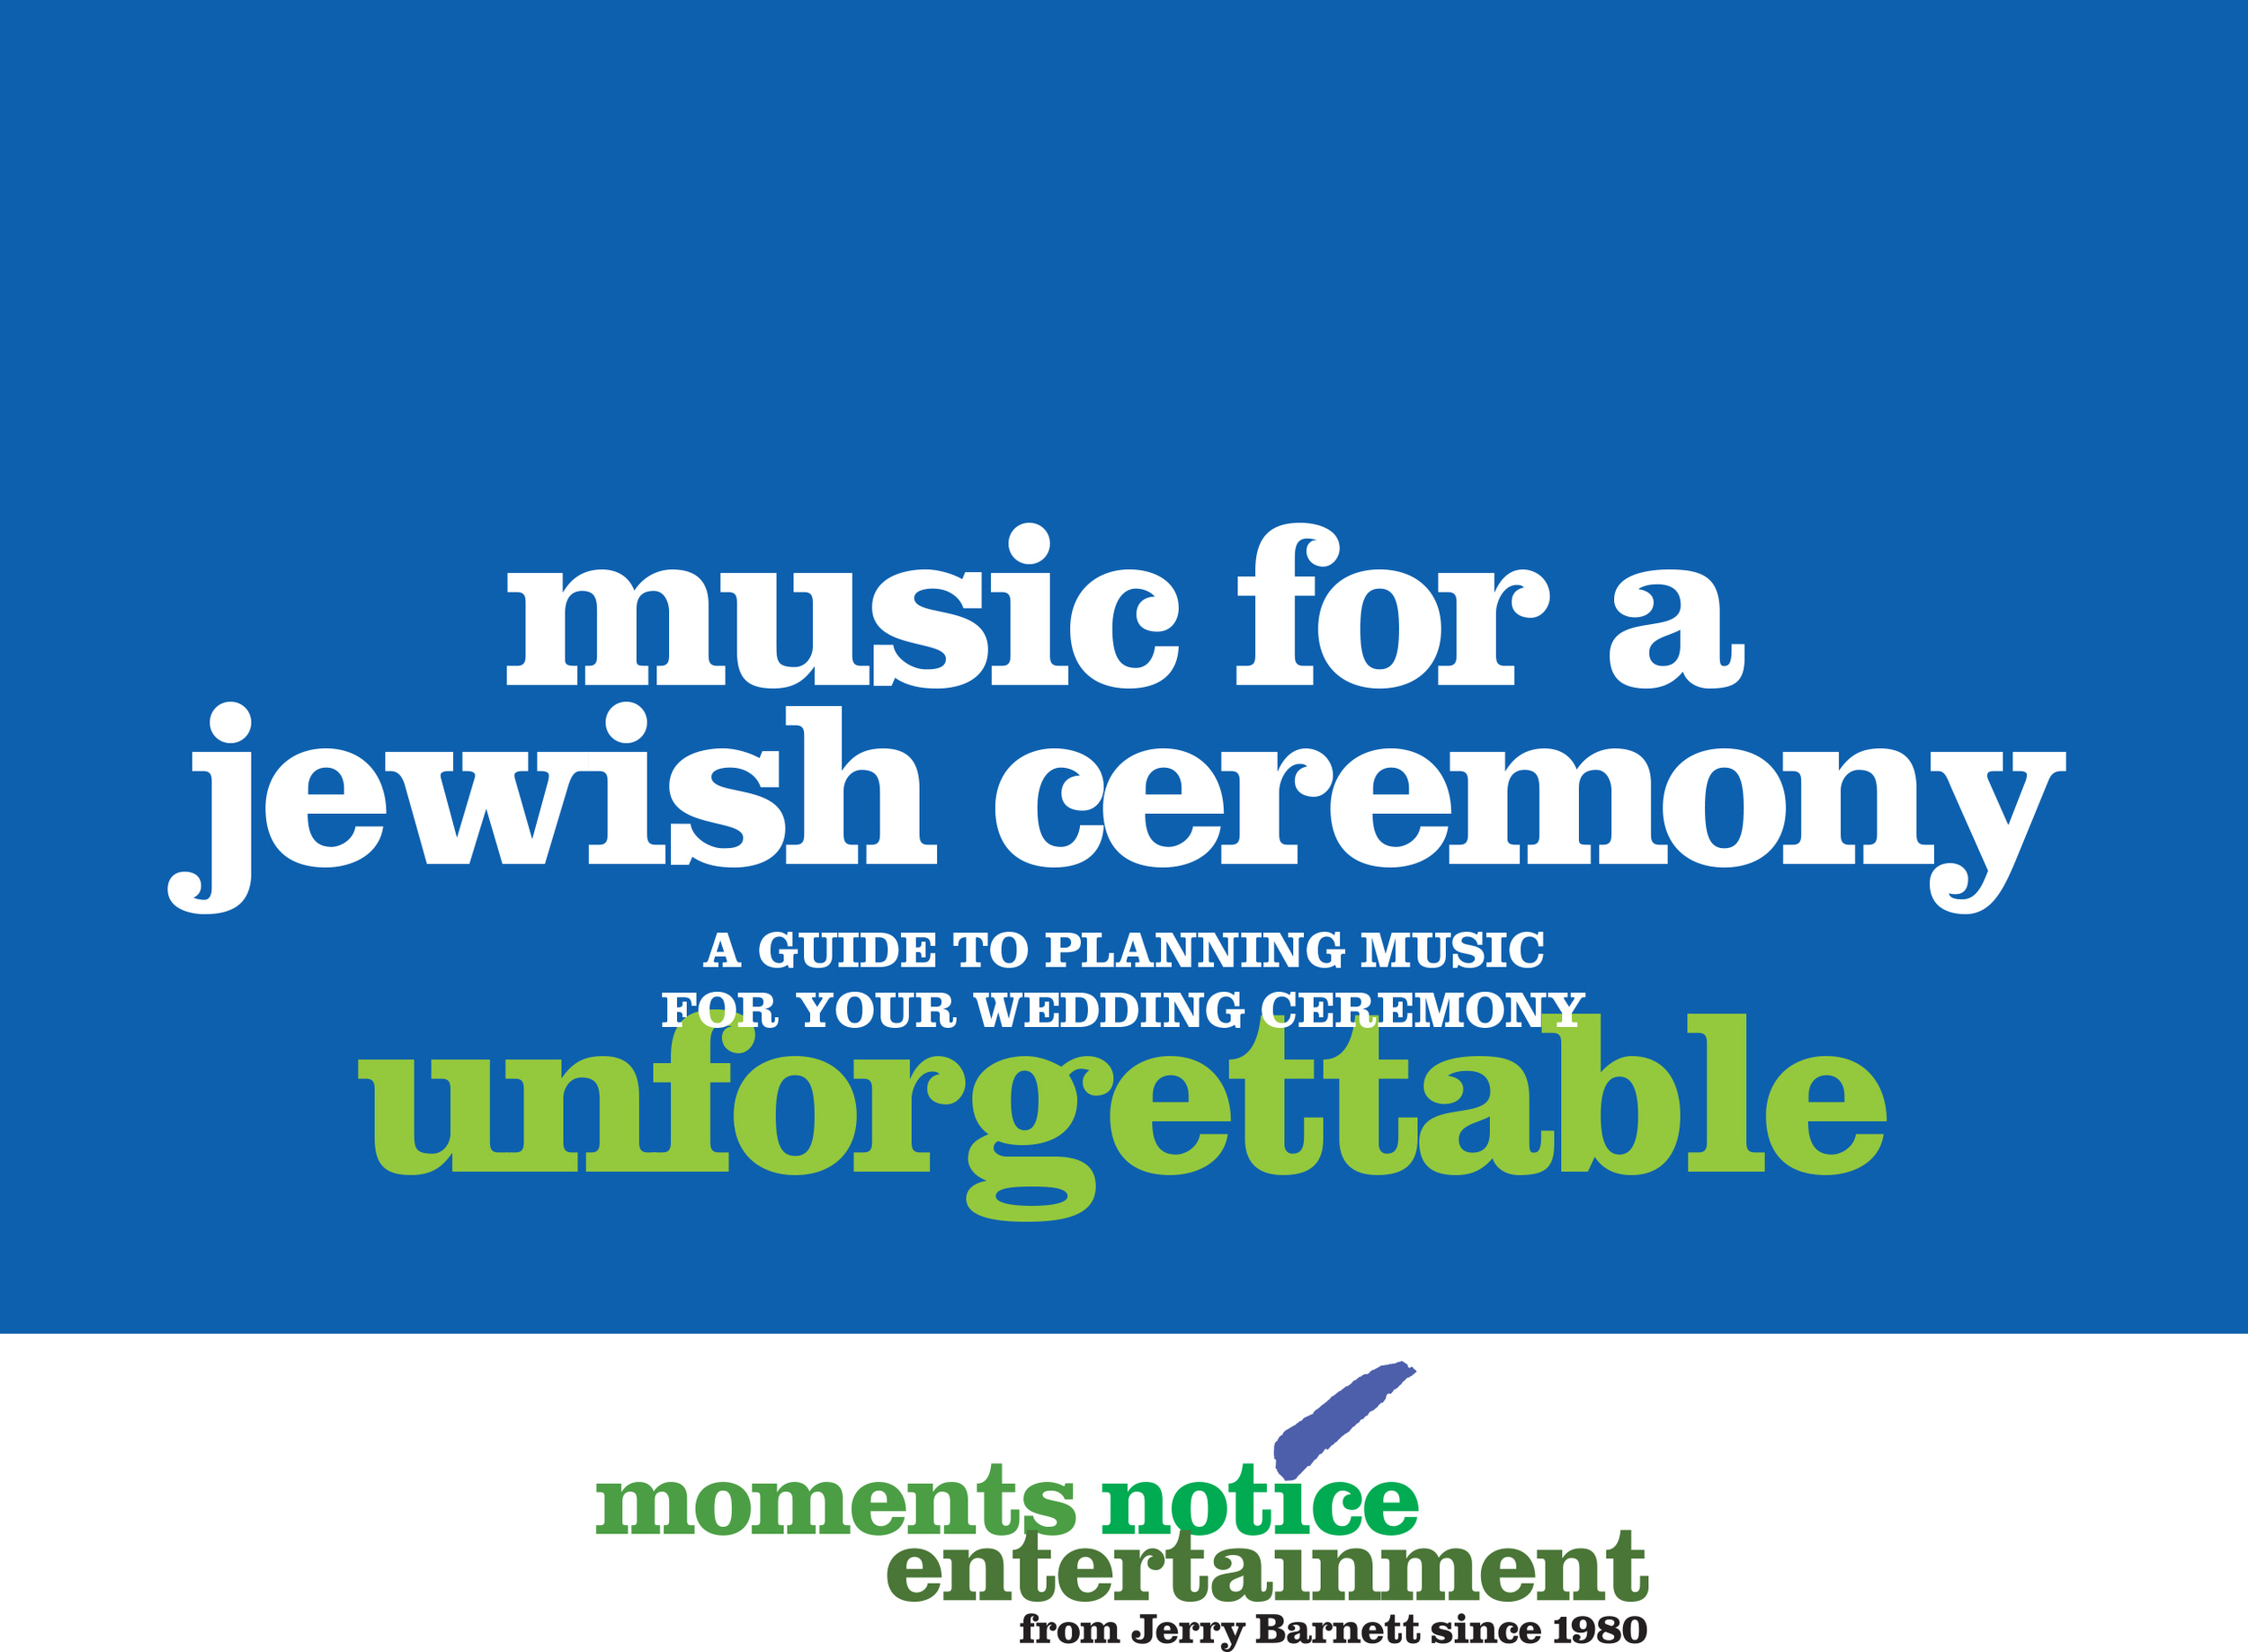 Download music selections for Jewish wedding